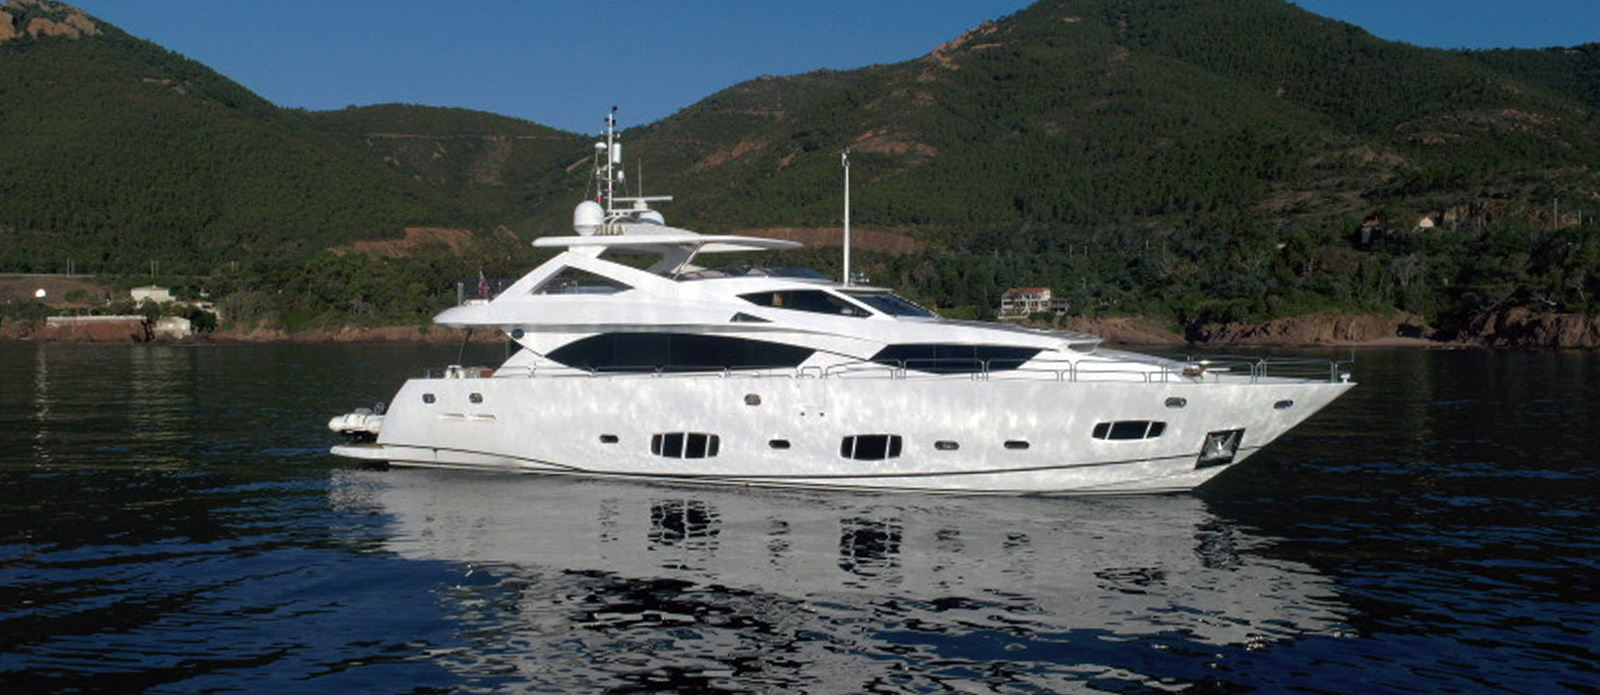 Sunseeker-30-Metre-Yacht-Tuppence---Side-Profile-2